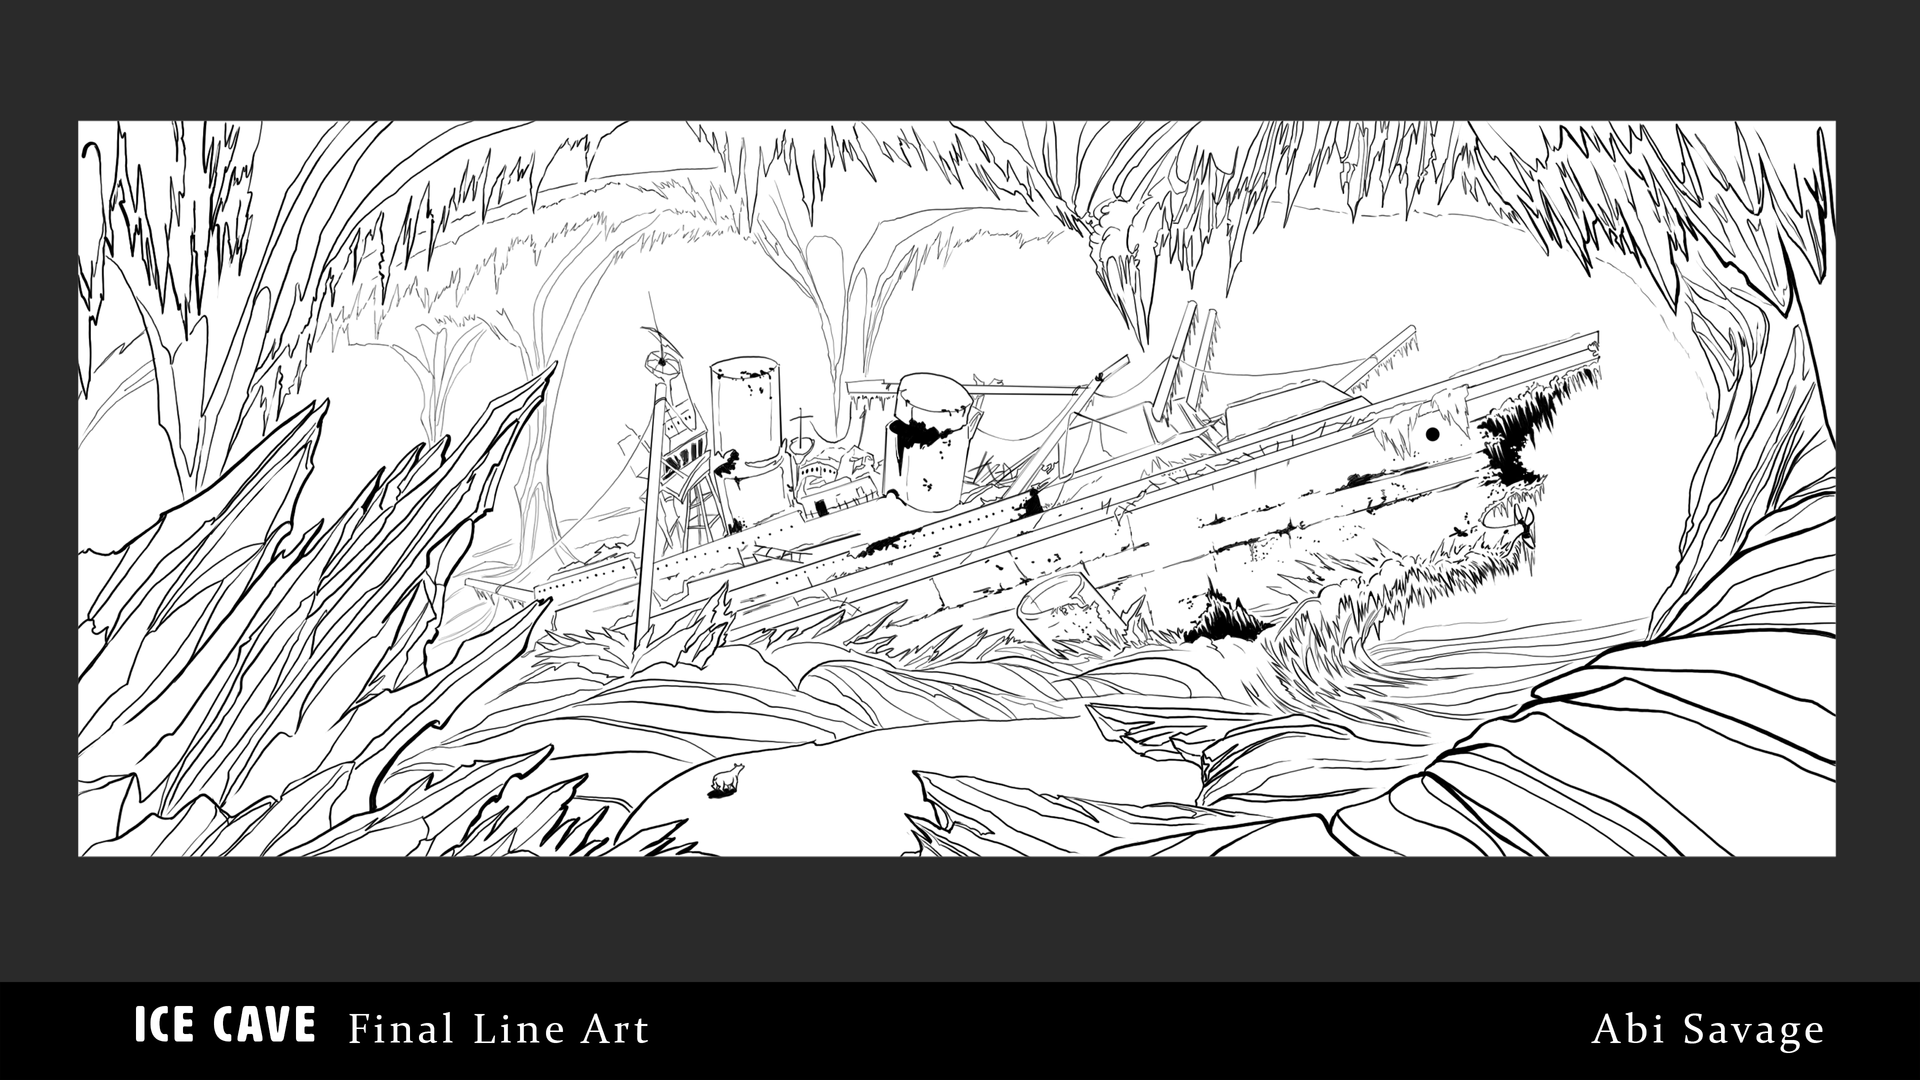 Ice Cave Final Line Art